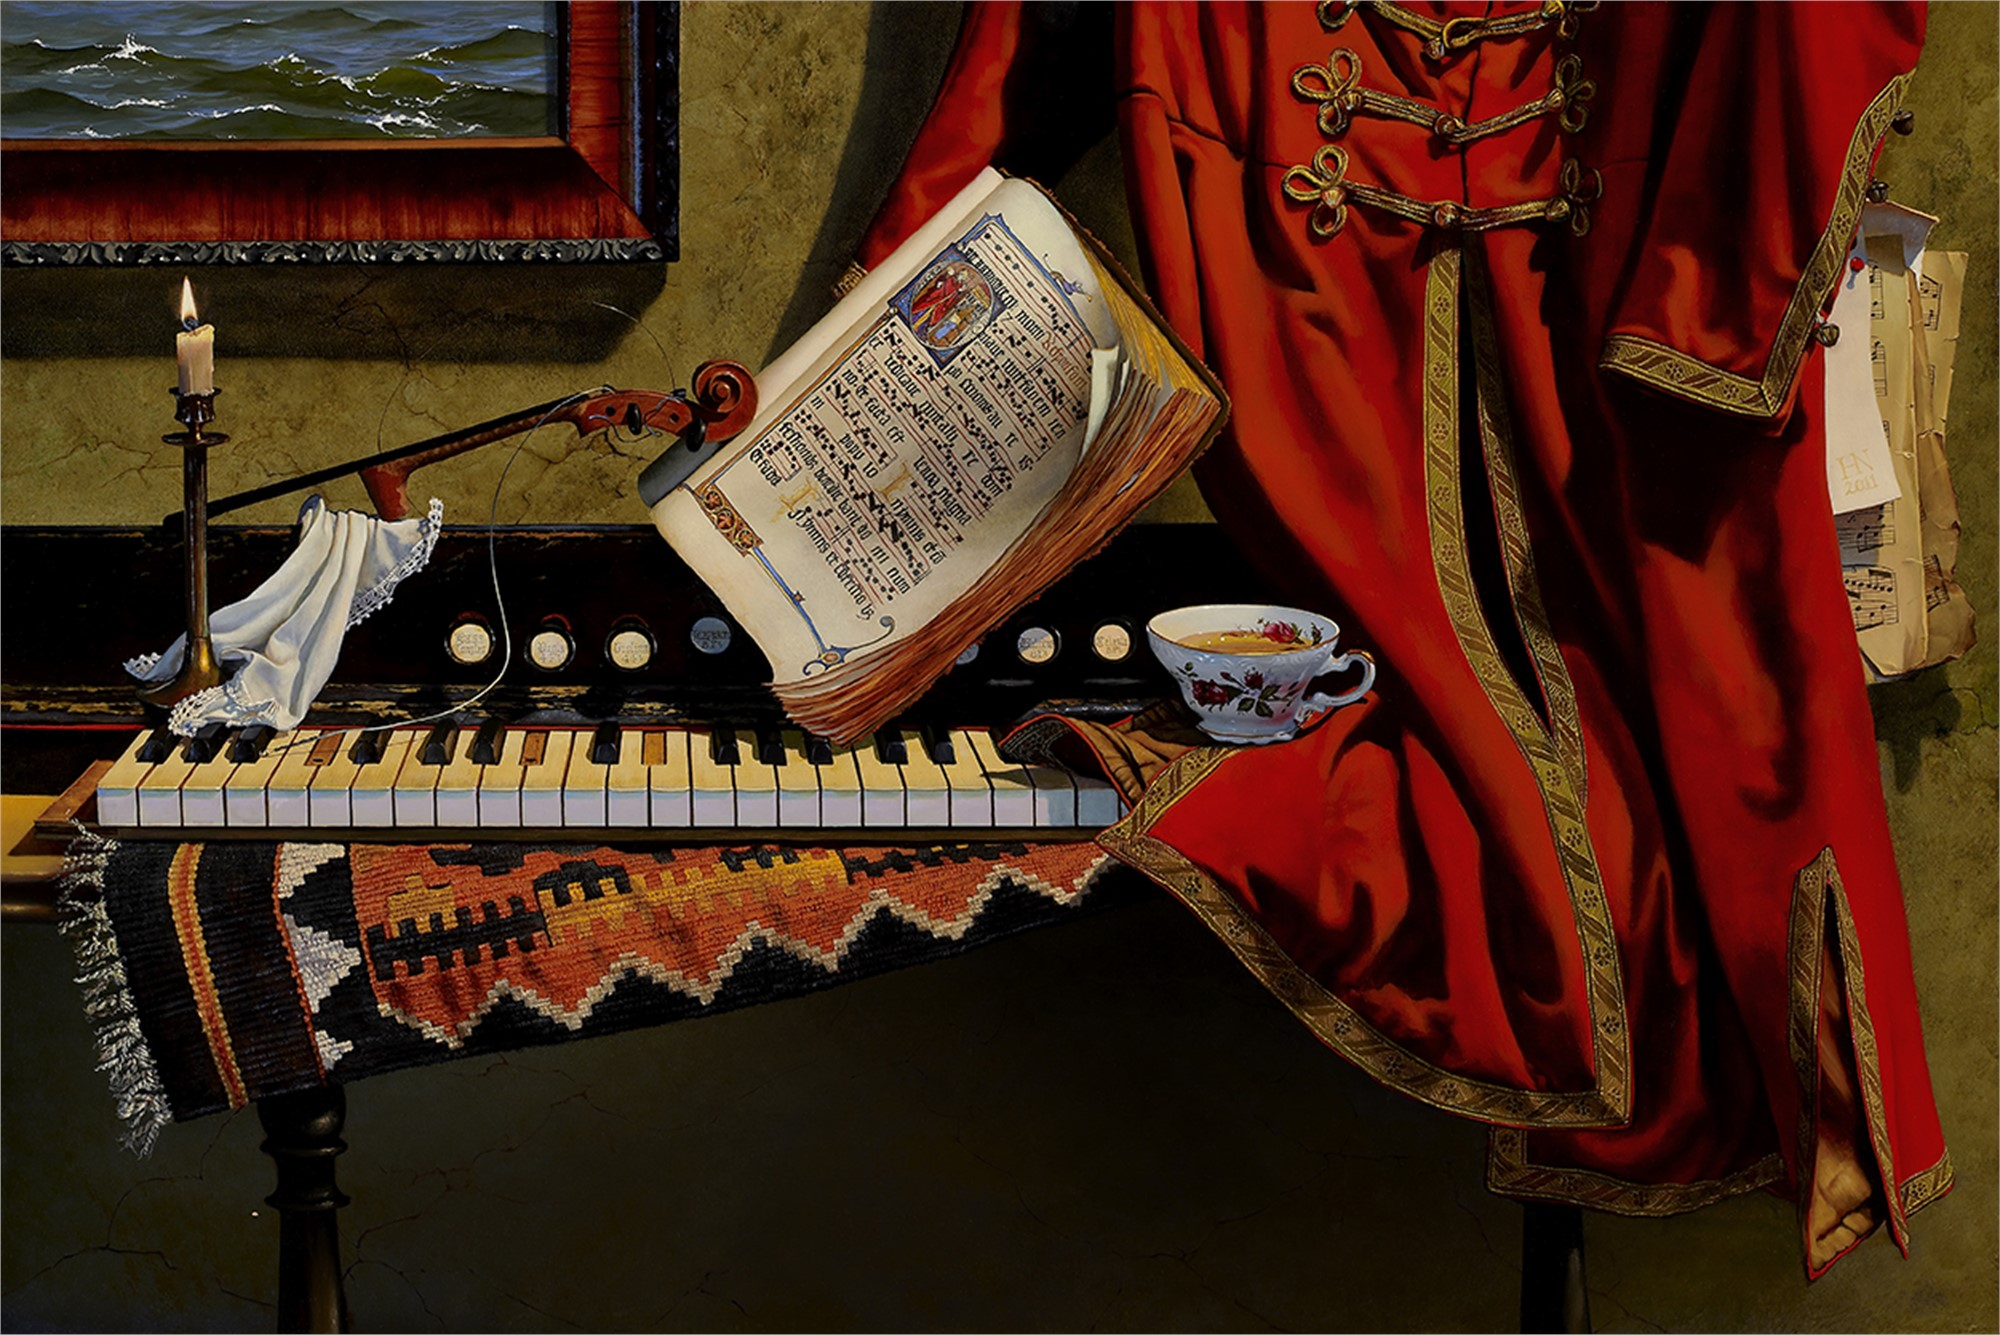 Organist's Daughter by Heather Neill